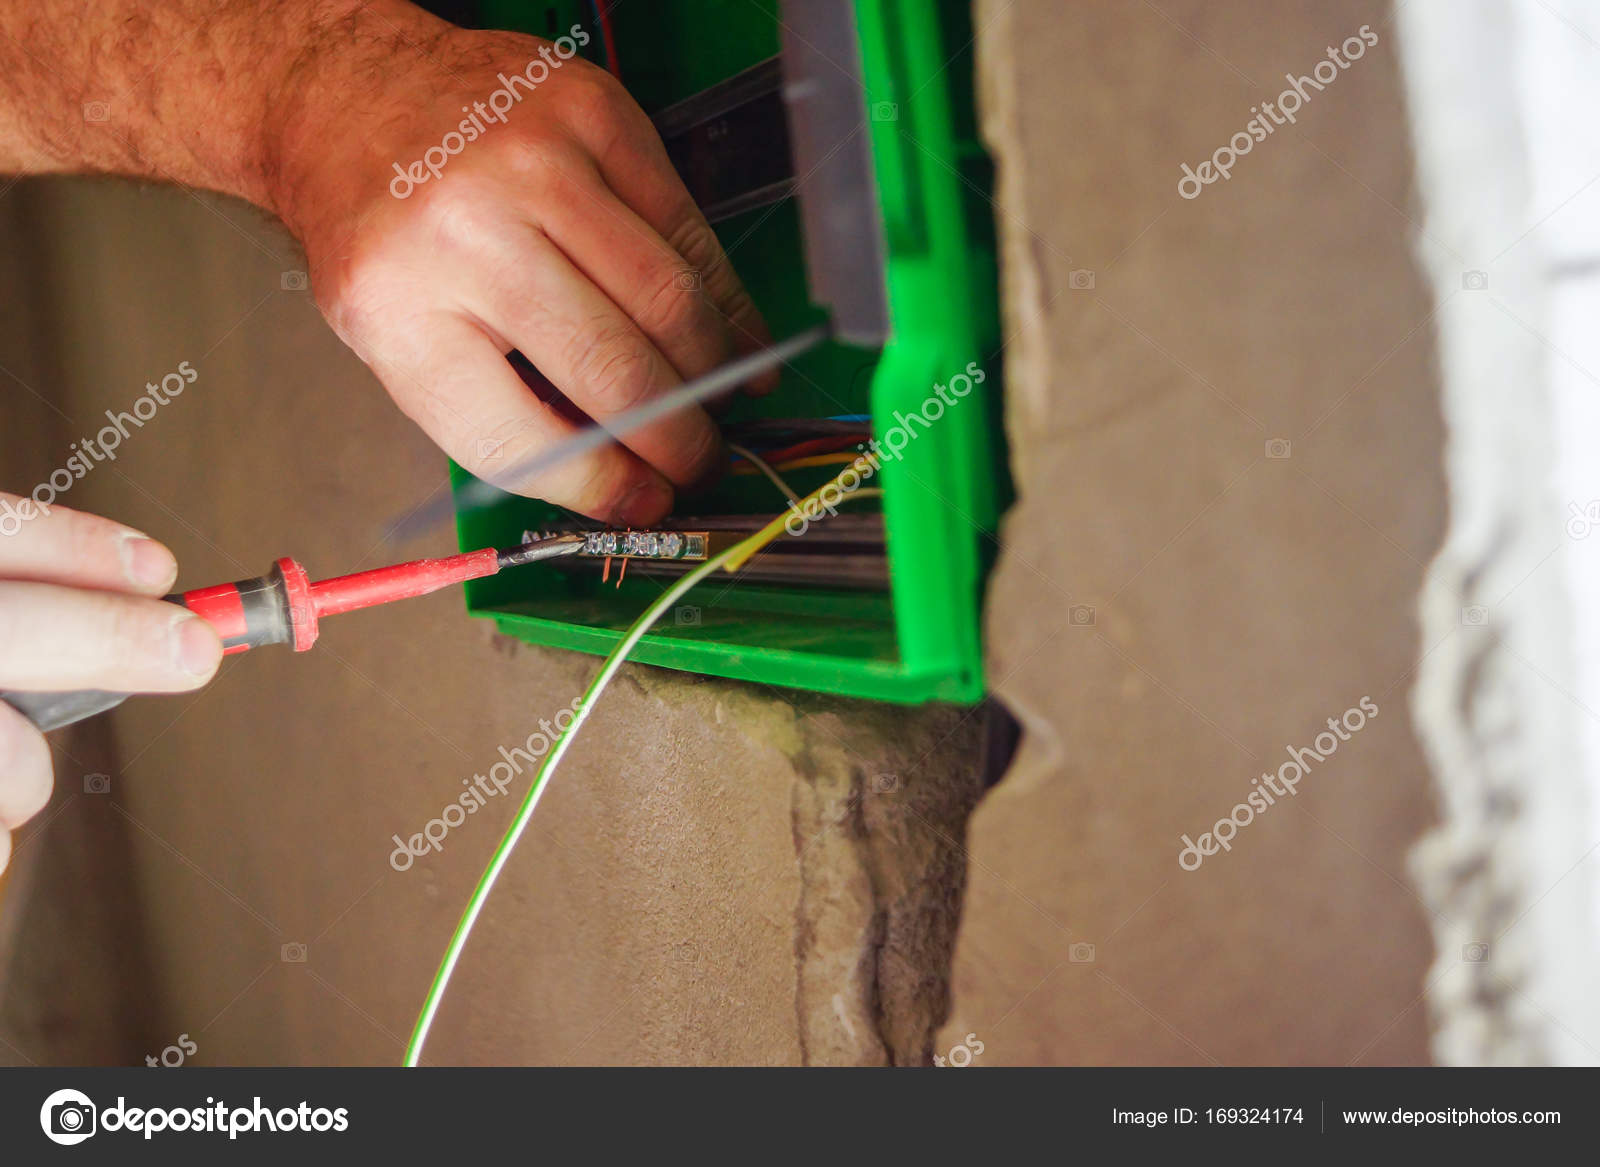 Remarkable Hands Electrical Wiring Is Pulled Through The Hole In The Wall Of Wiring Digital Resources Bemuashebarightsorg